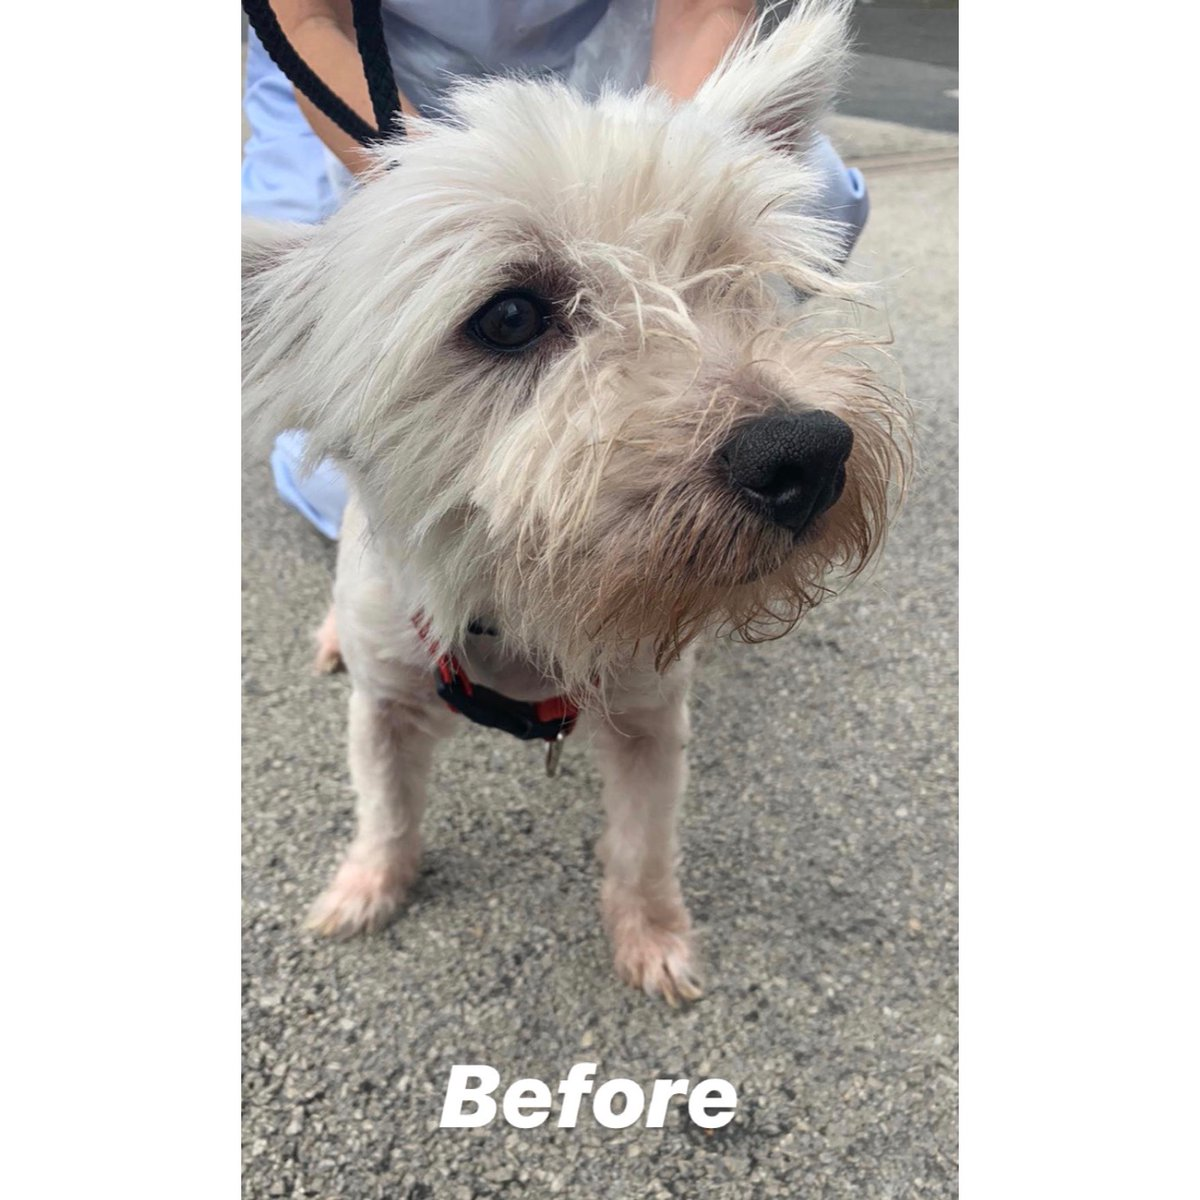 Lofty was signed over to our care in July, he had an untreated skin condition causing fur loss & red itchy skin & overgrown nails.. he now lives the life of luxury with his new family who adore him, he has well and truly landed on his paws 🐾 what a lovely happy ending 🐶🥰 (72)